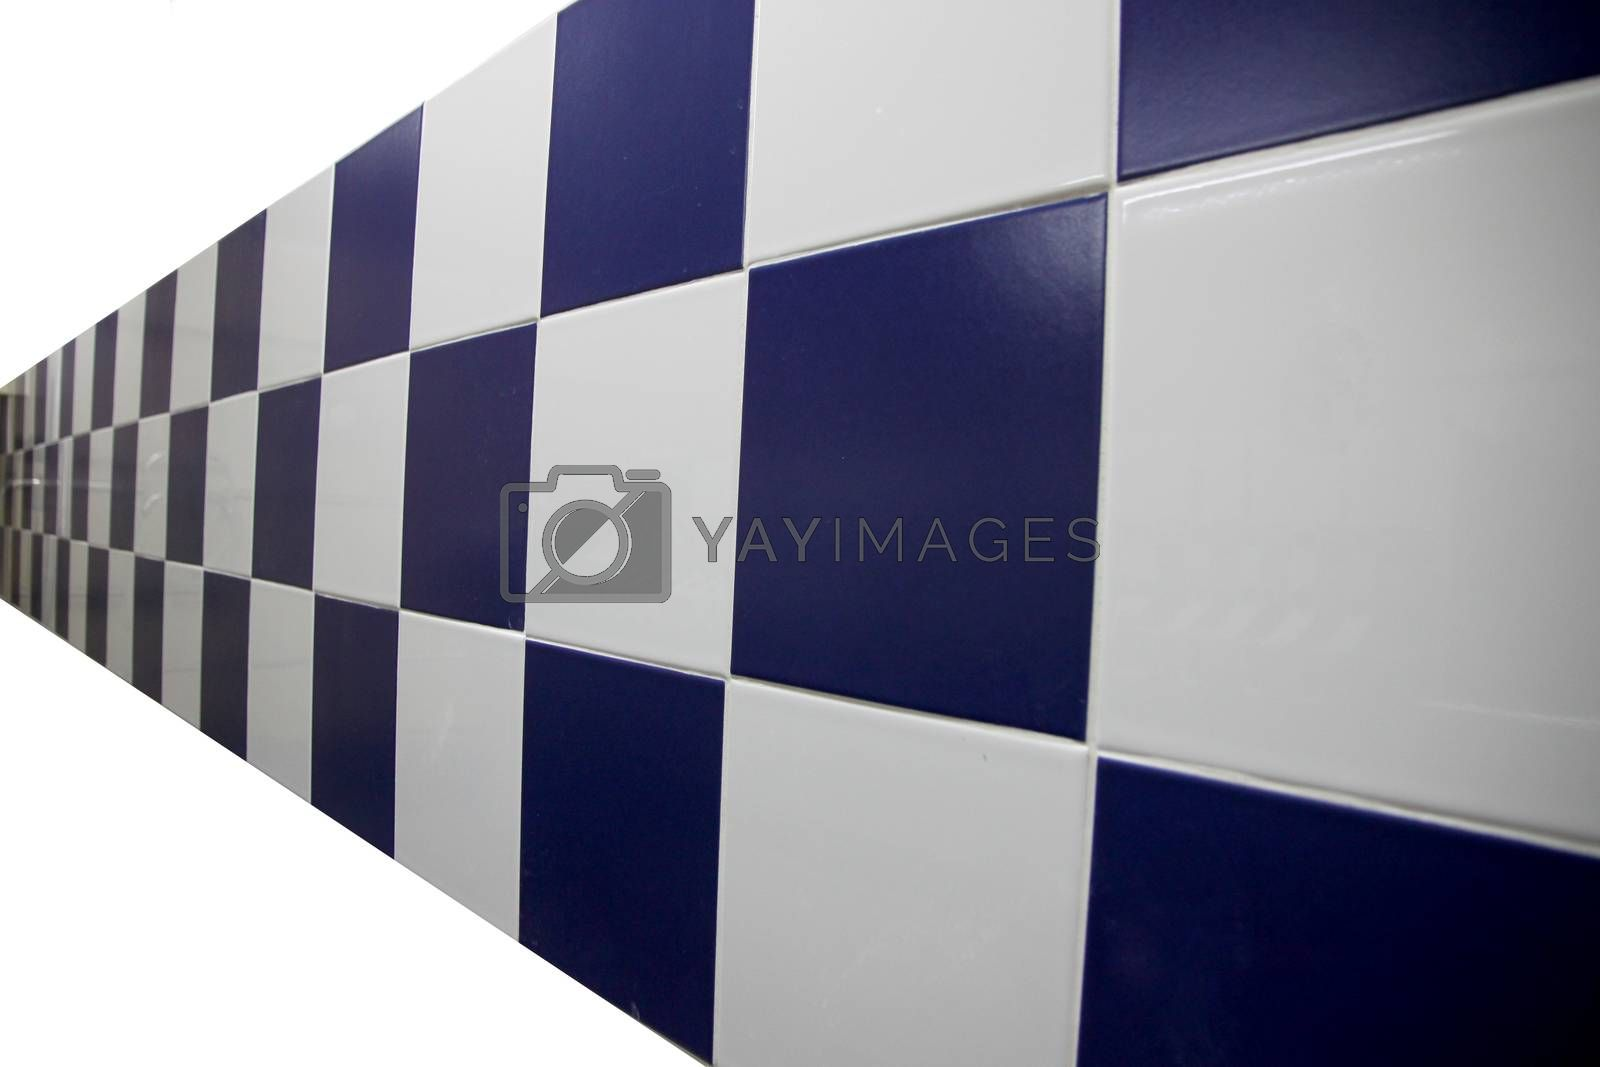 Pictuer The Blue Walls are checkered on white background.